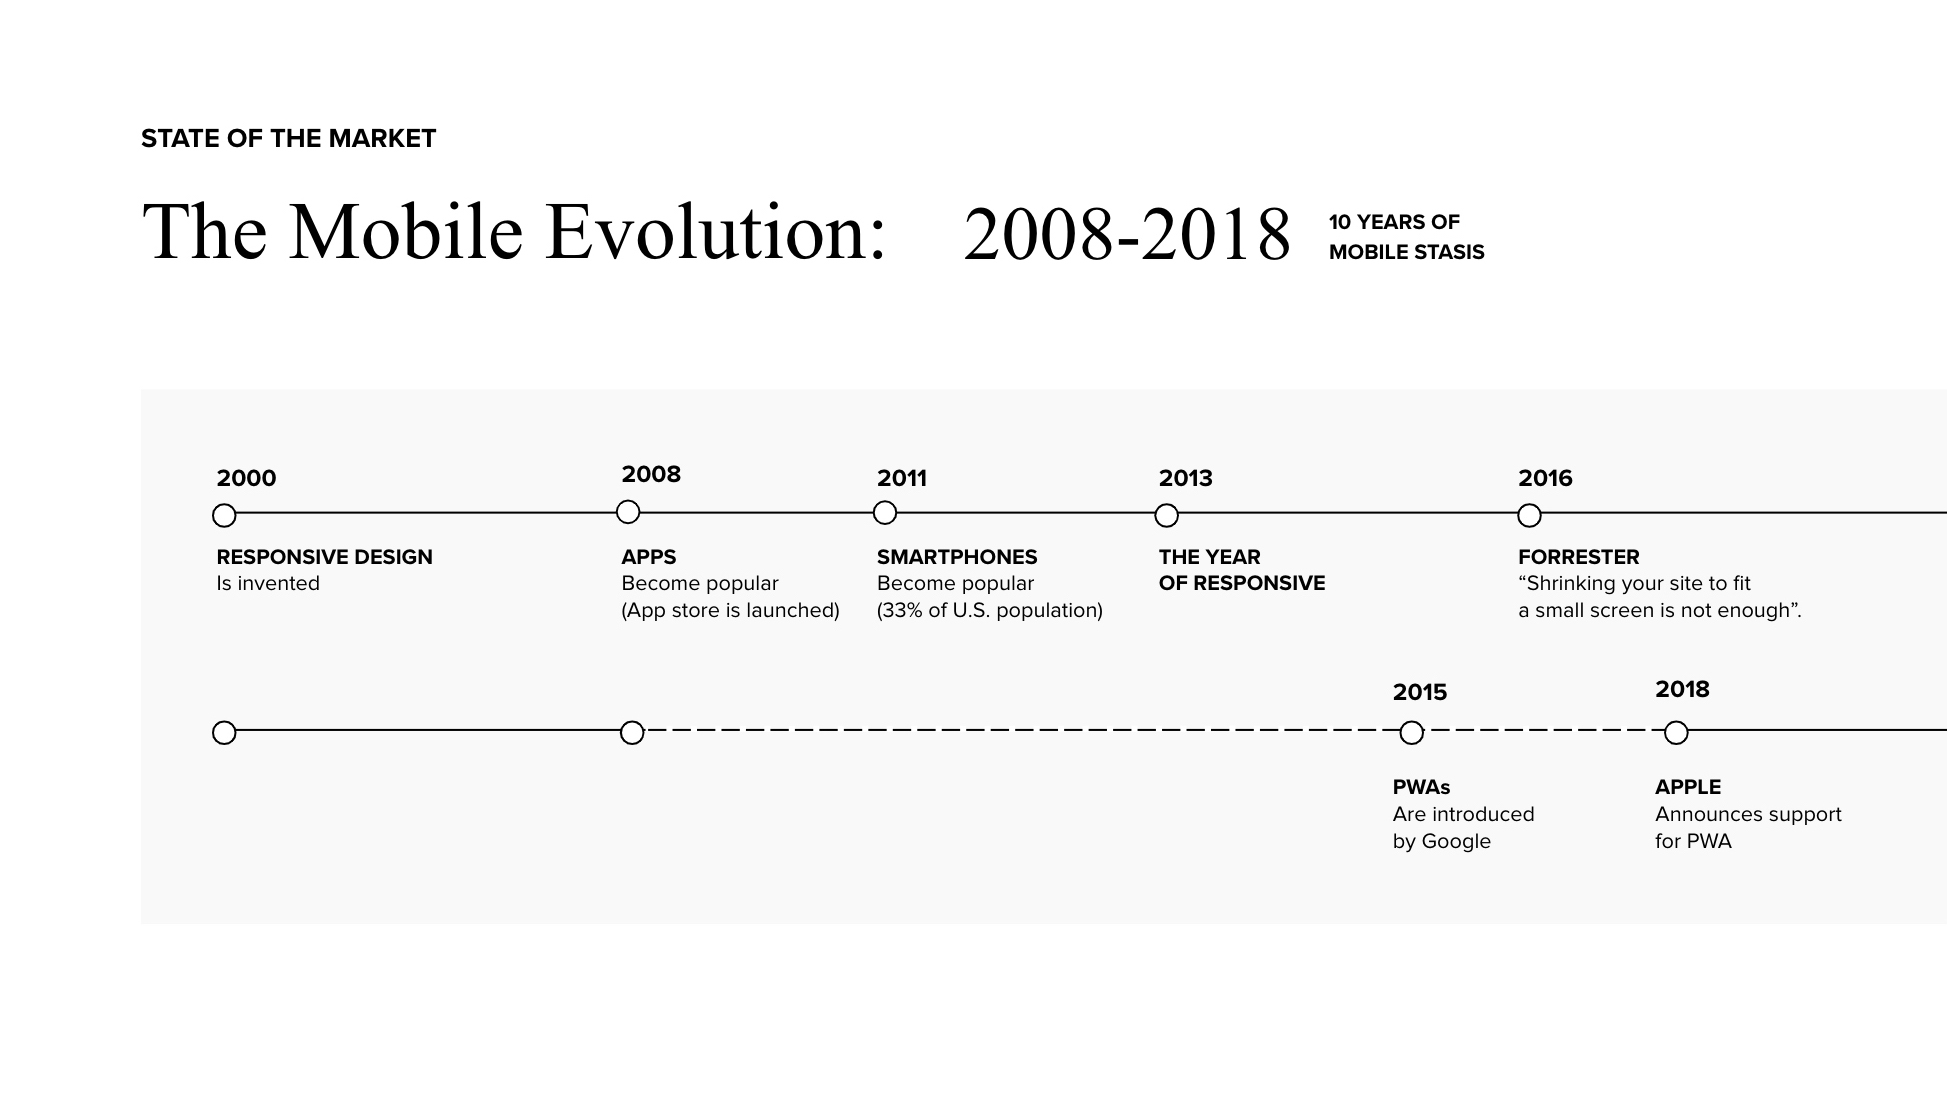 A timeline of mobile user experience design or mcommerce. It shows 10 years of mobile stasis.